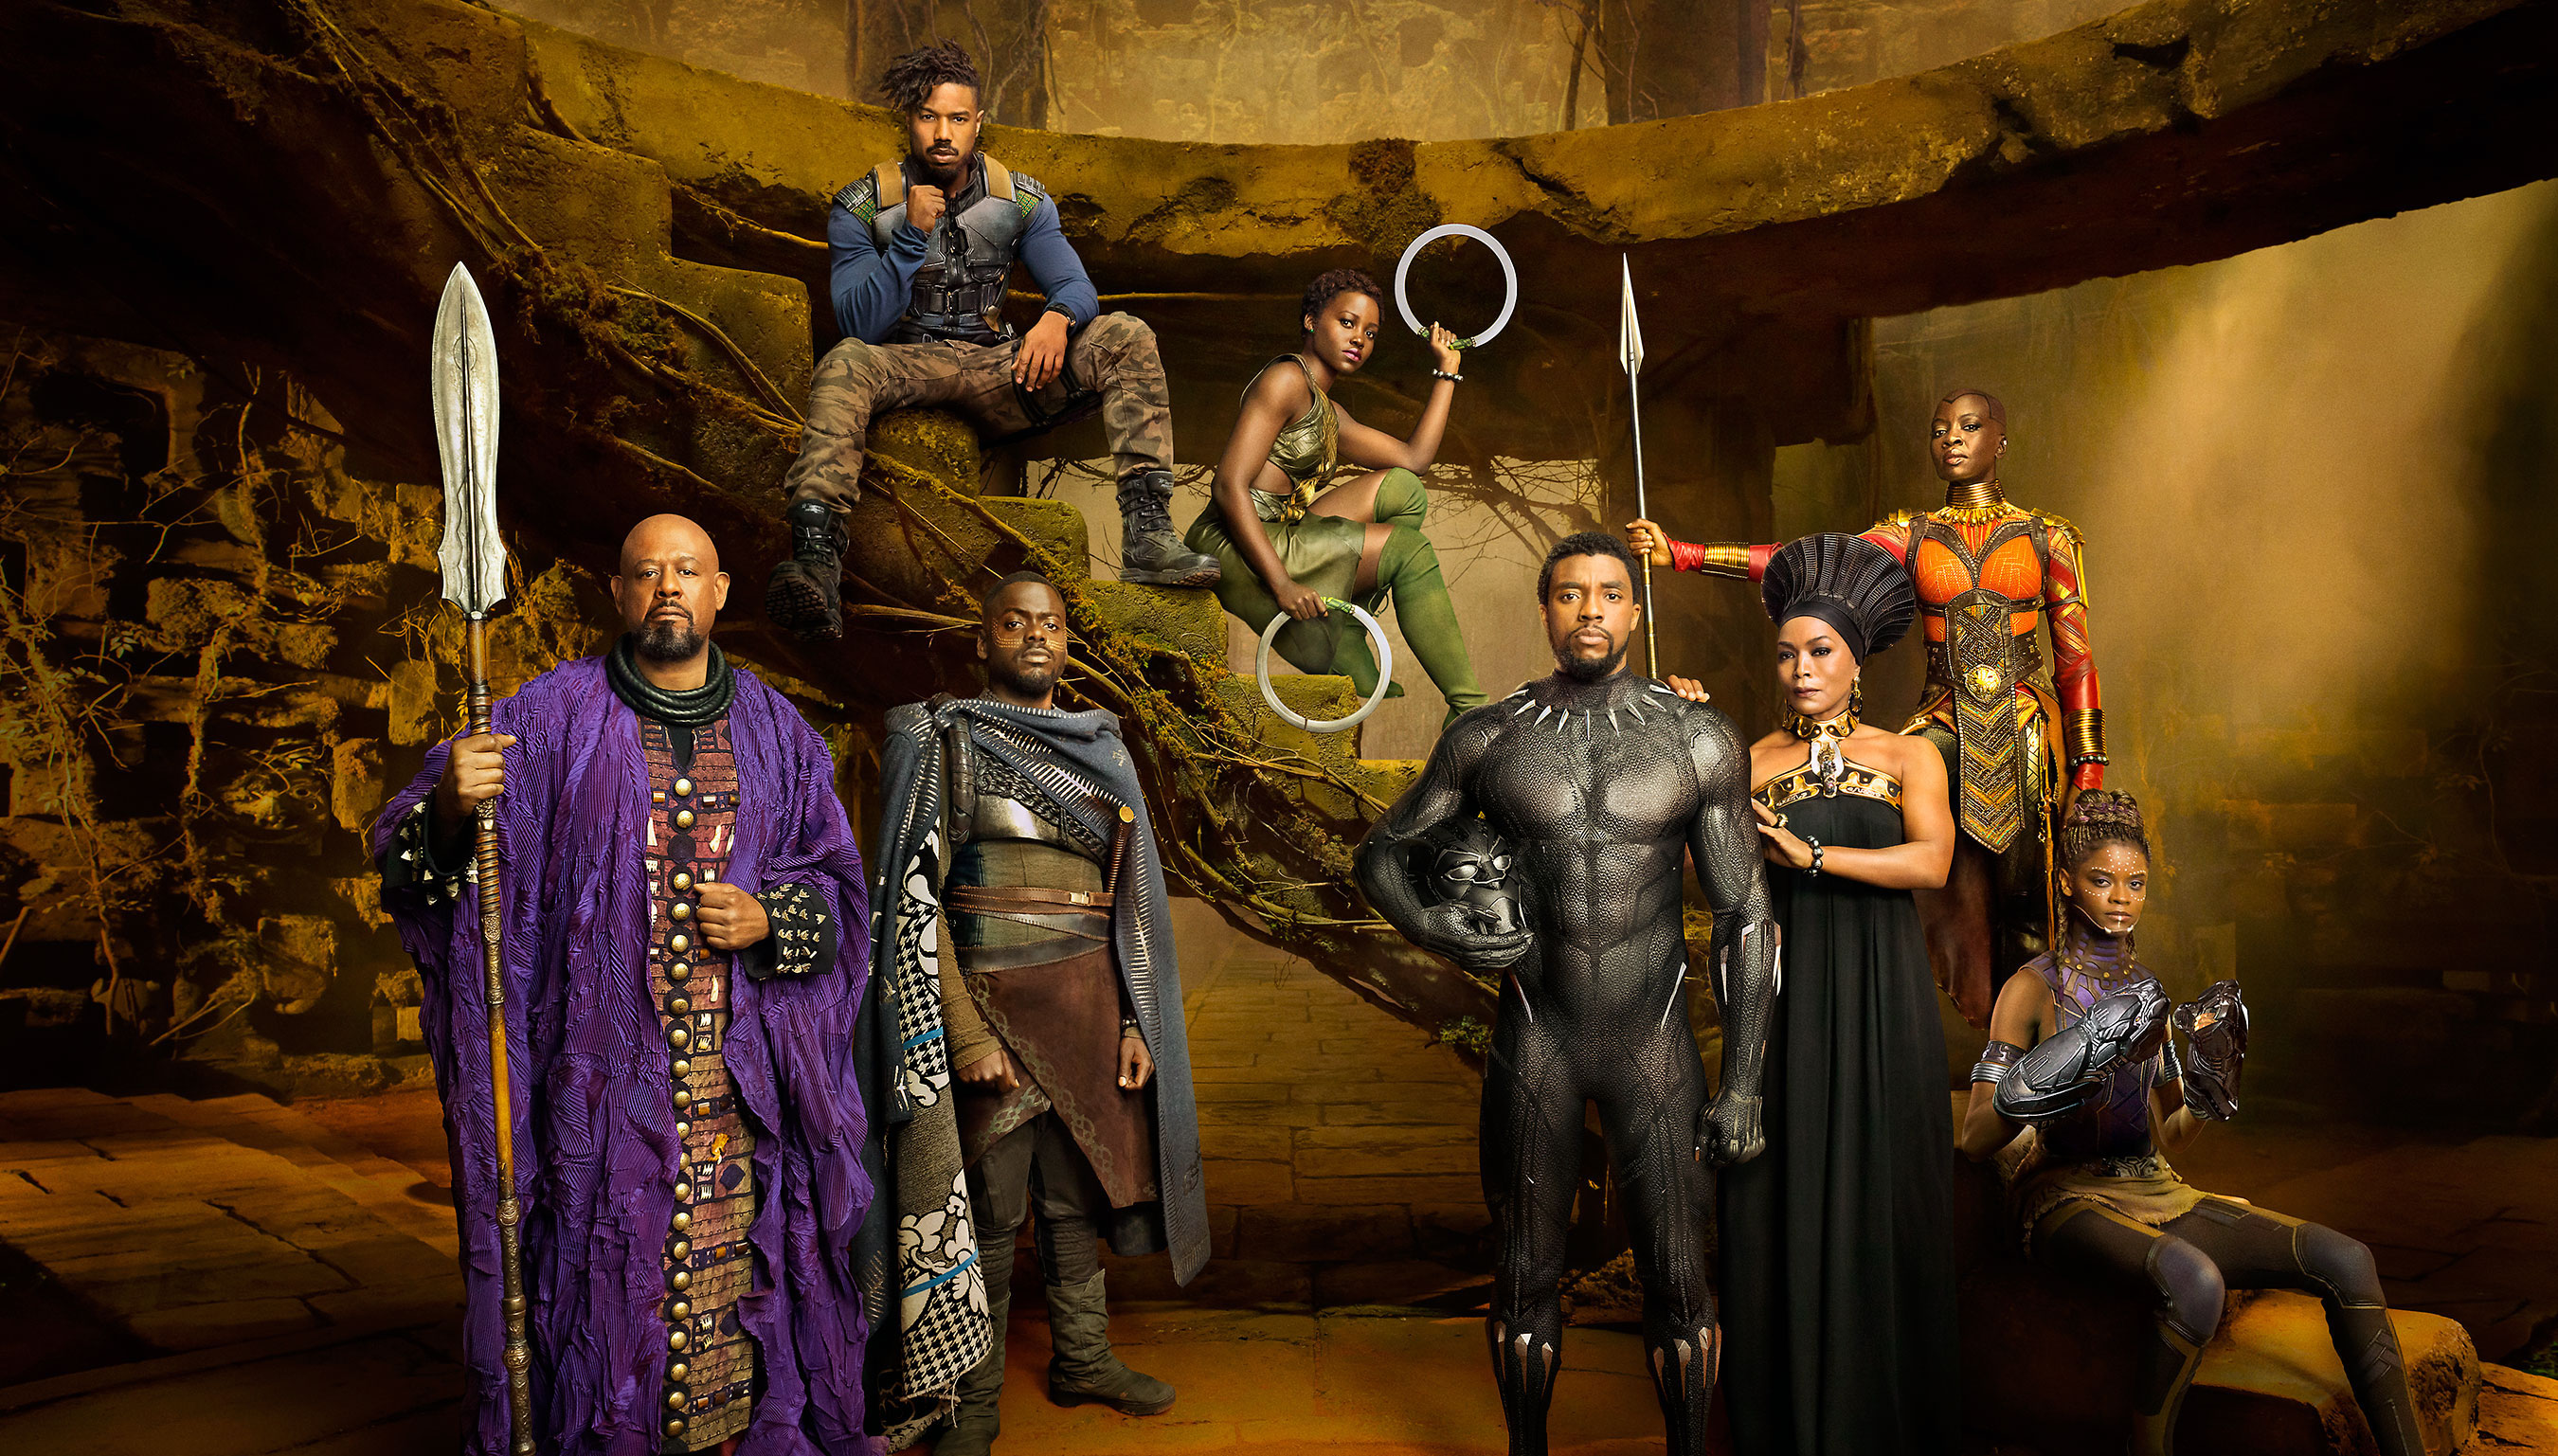 Marvel Studios' BLACK PANTHER Forest Whitaker as Zuri, Daniel Kaluuya as W'Kabi, Michael B. Jordan as Erik Killmonger, Lupita Nyong'o as Nakia, Chadwick Boseman as Black Panther/T'Challa, Angela Bassett as Ramonda, Danai Gurira as Okoye, and Letitia Wright as Shuri photographed exclusively for Entertainment Weekly by Kwaku Alston on March 18, 2017 in Atlanta, Georgia. Kwaku Alston � 2017 MVLFFLLC. TM & � 2017 Marvel. All Rights Reserved.